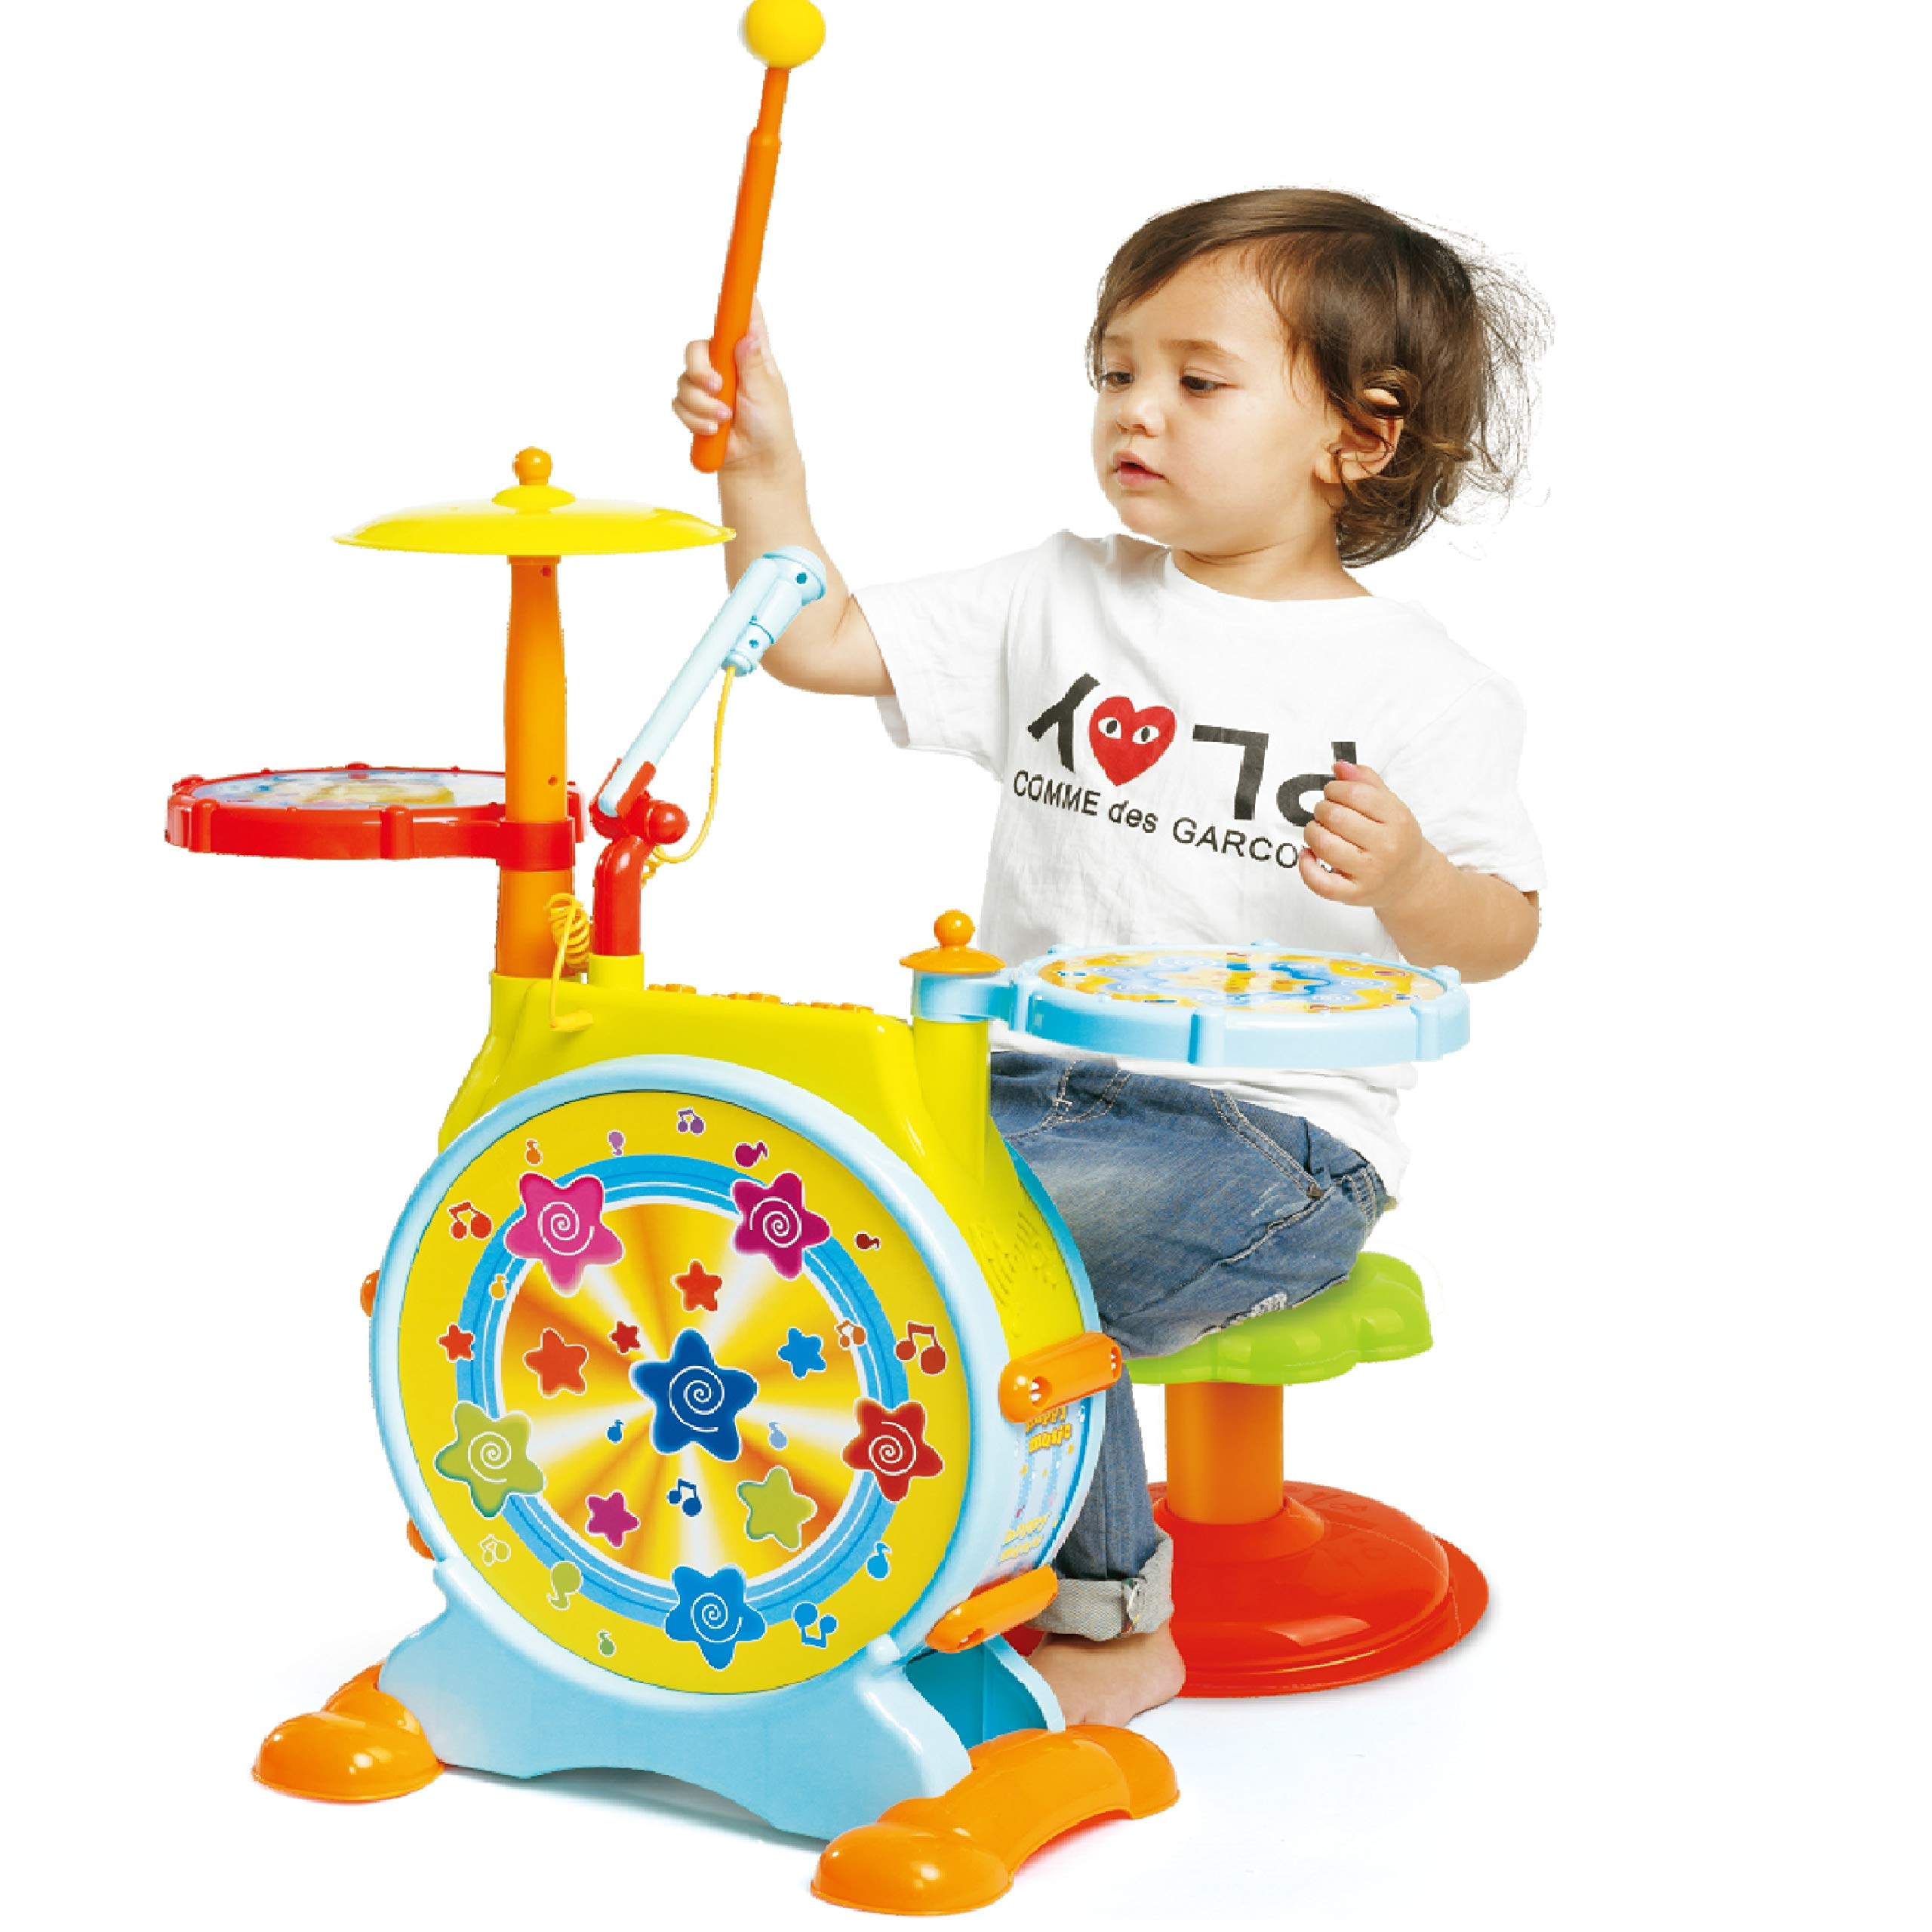 Prextex Kids' Electric Toy Drum Set for Kids Working Microphone Lights and Adjustable Sound Bass Drum Pedal Drum Sticks with Little Chair All Included by Prextex